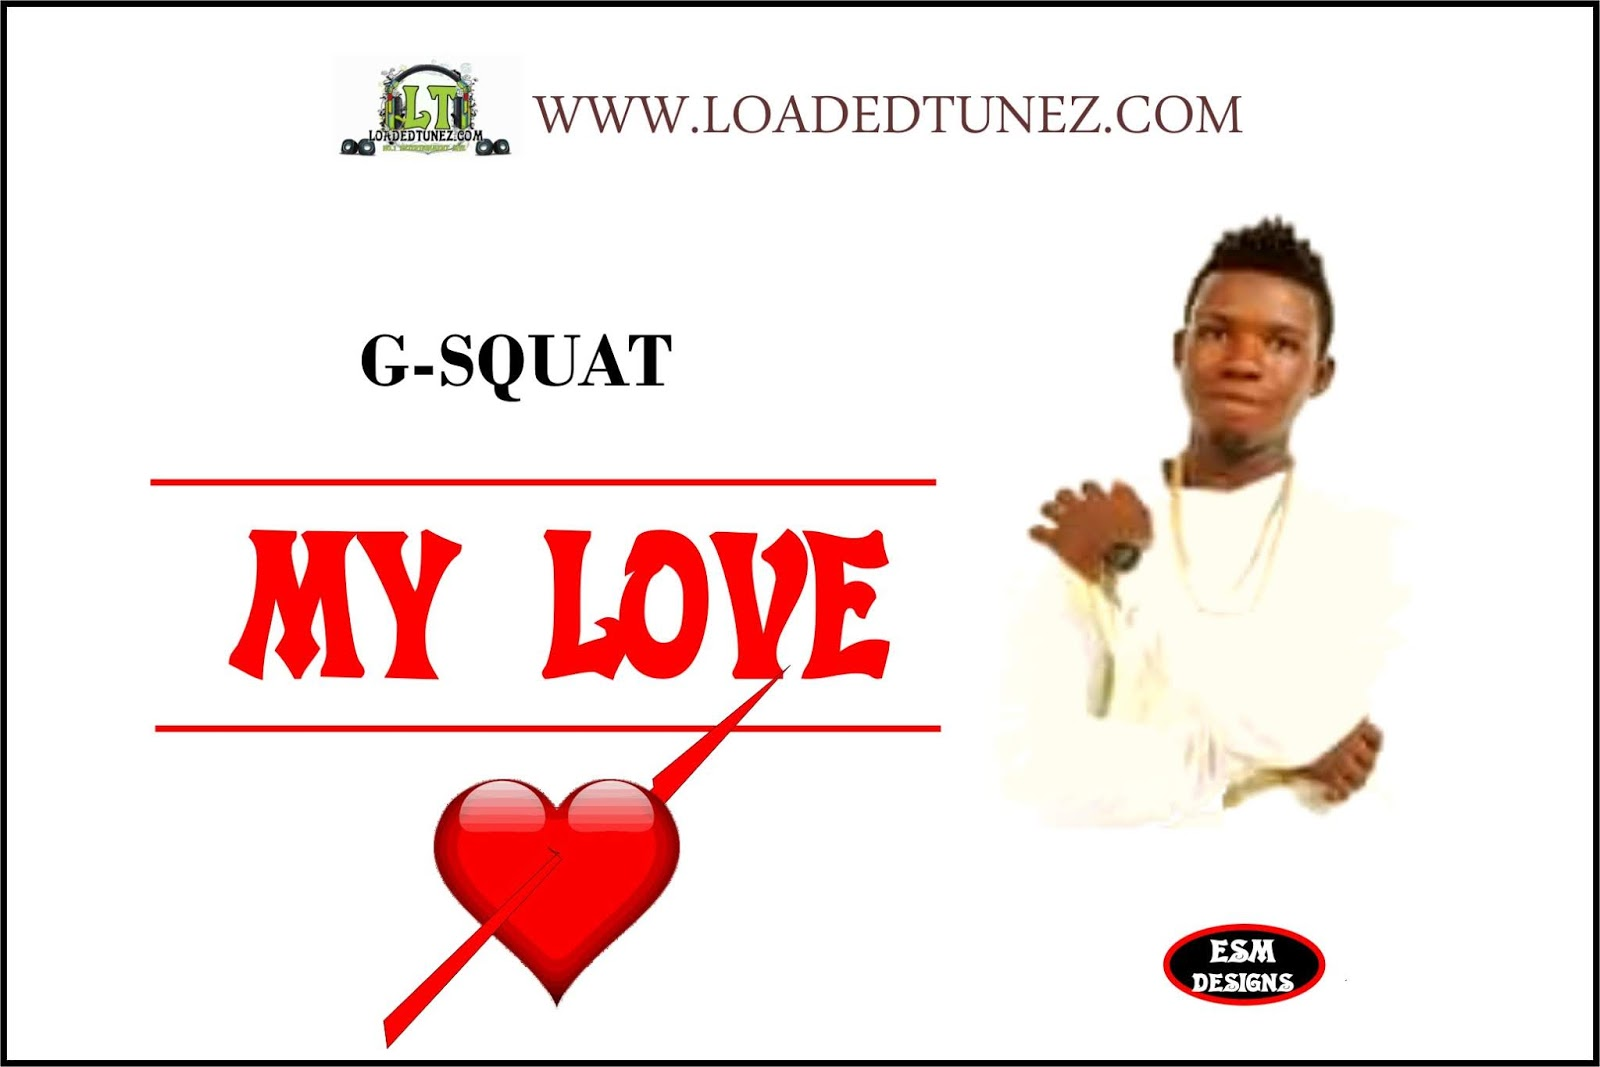 My love is back song download